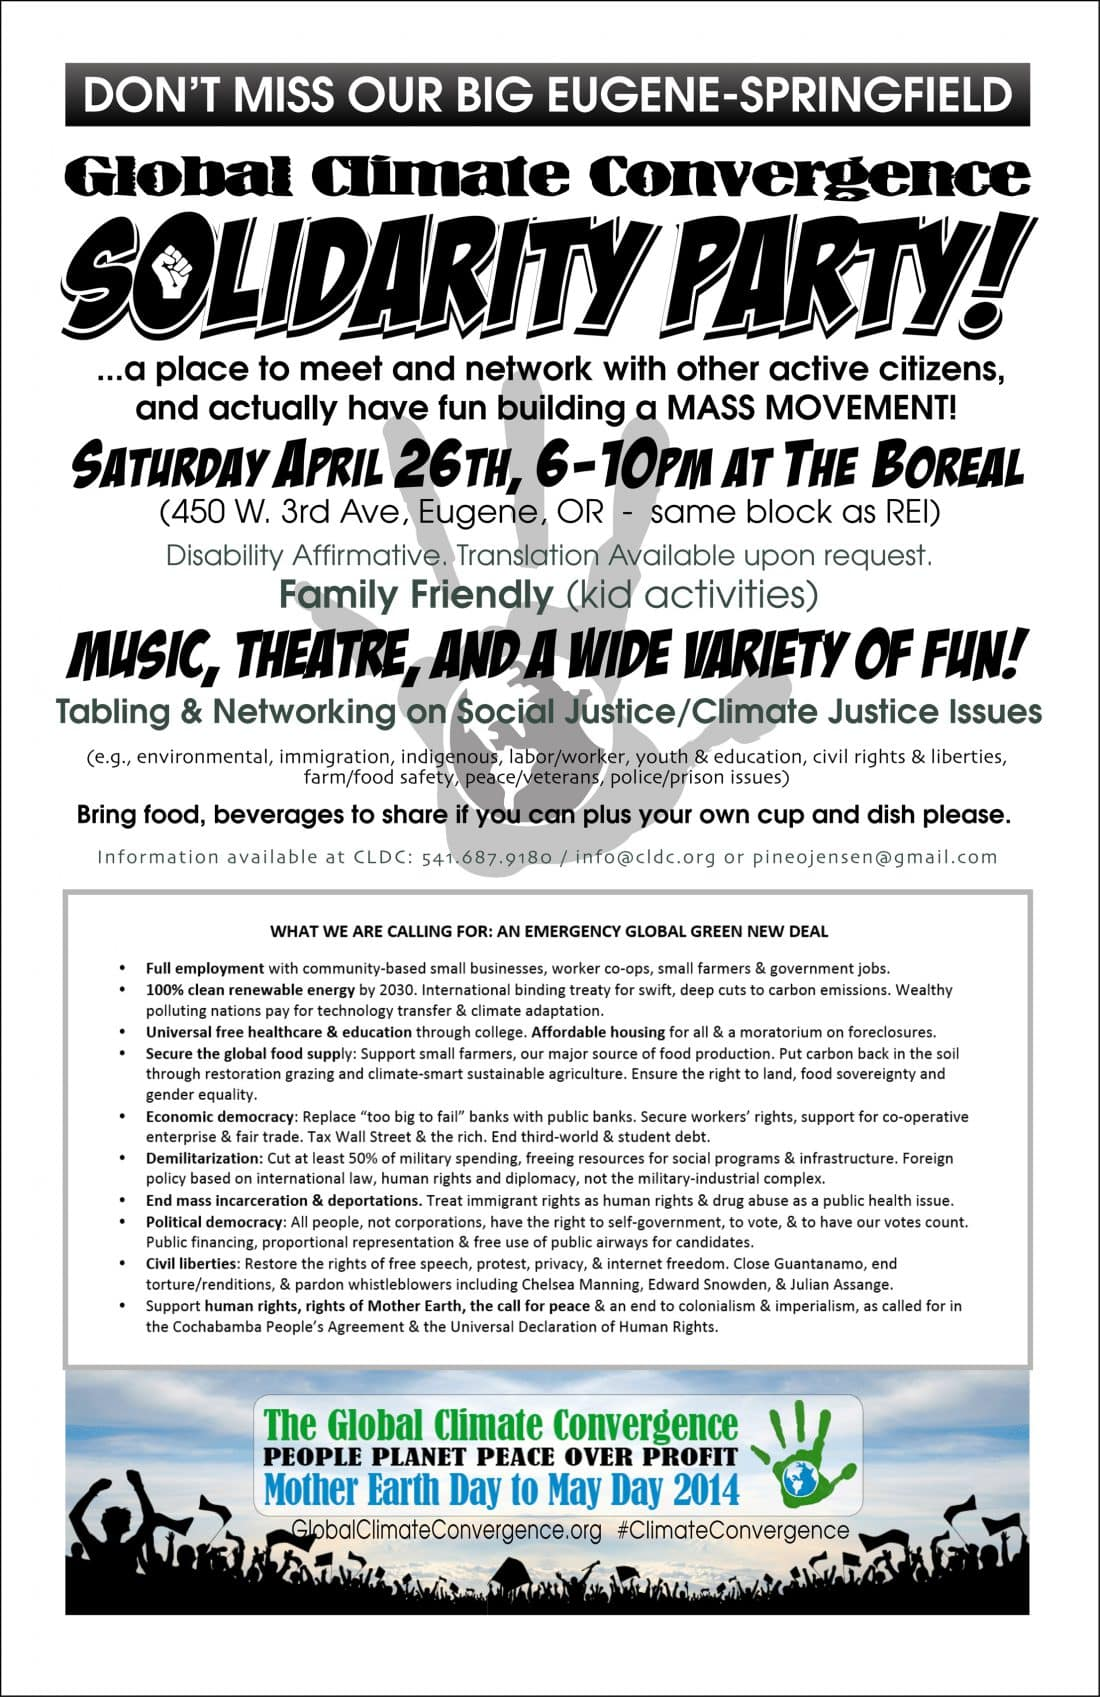 SolidarityPartyPoster_final200 copy